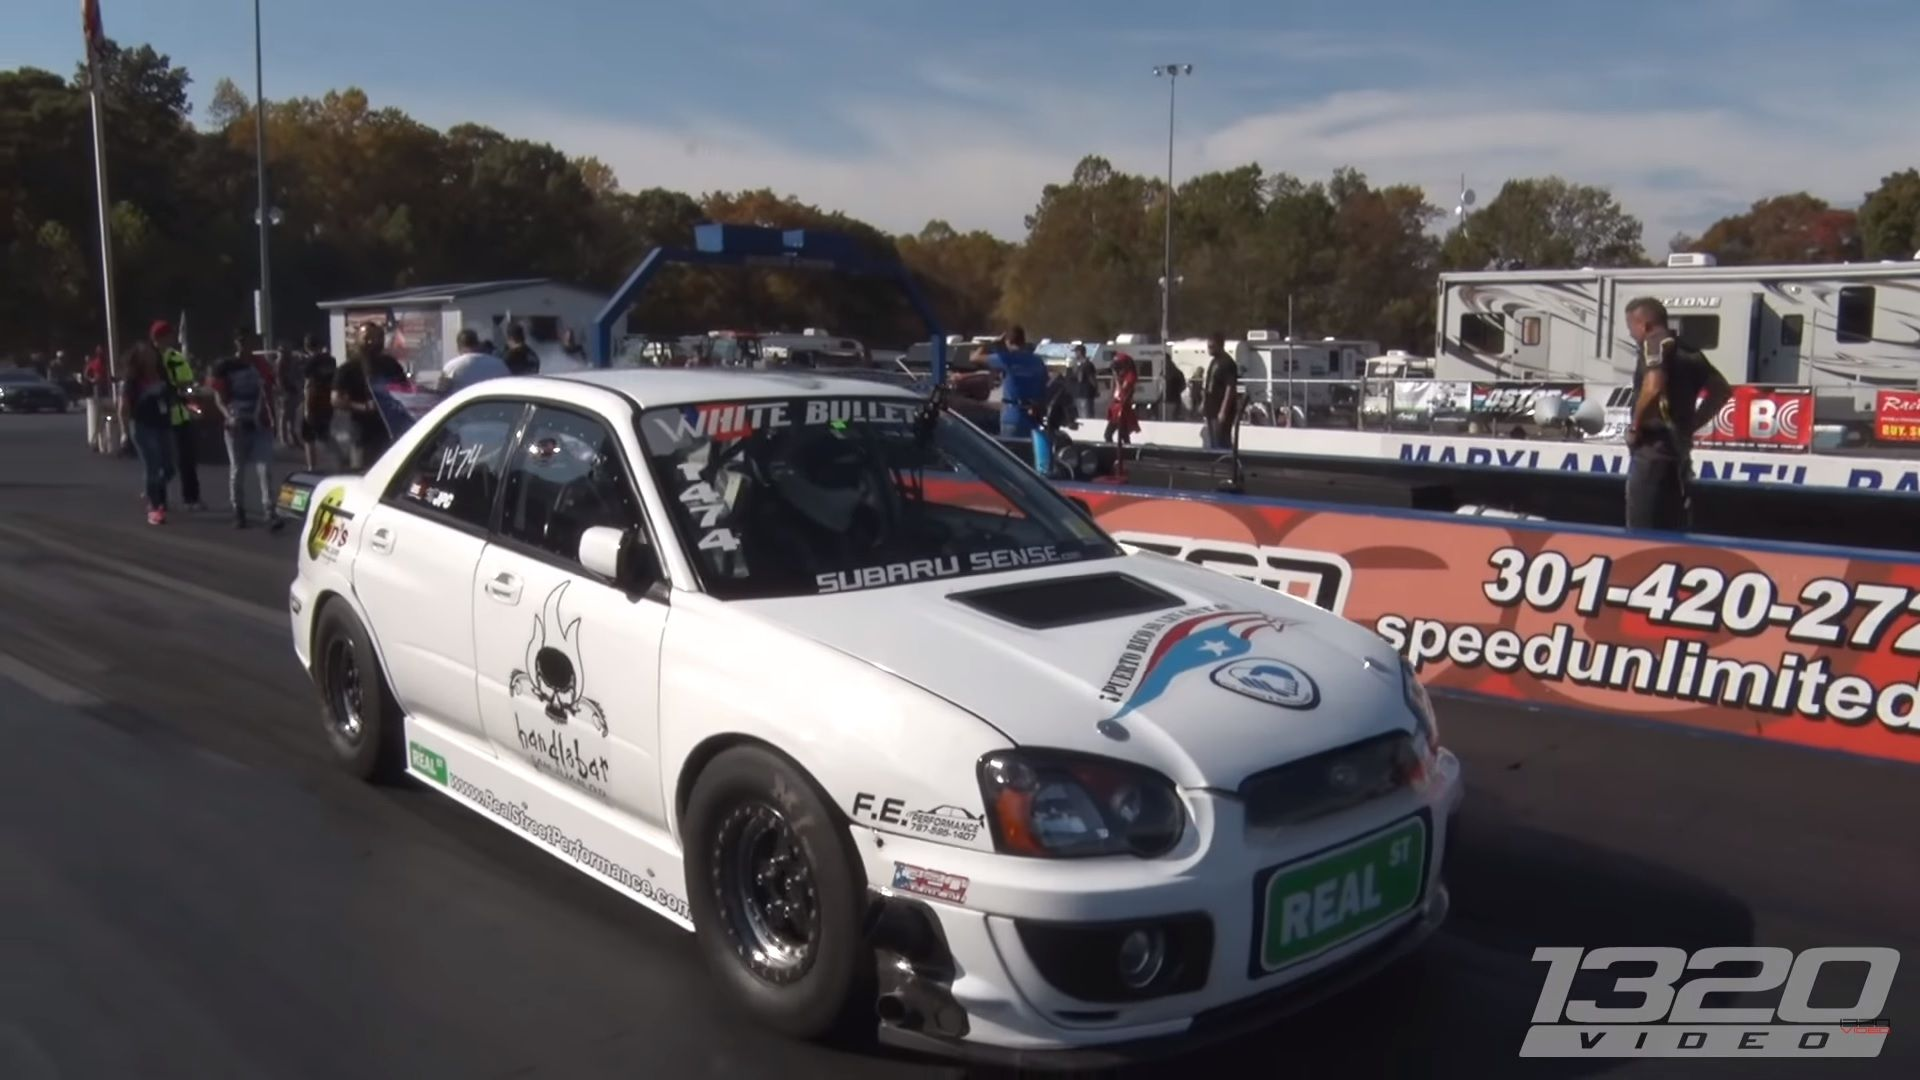 Watch This Subaru Wrx With A Six S D Awd And Four Cylinder Break Into The 7s